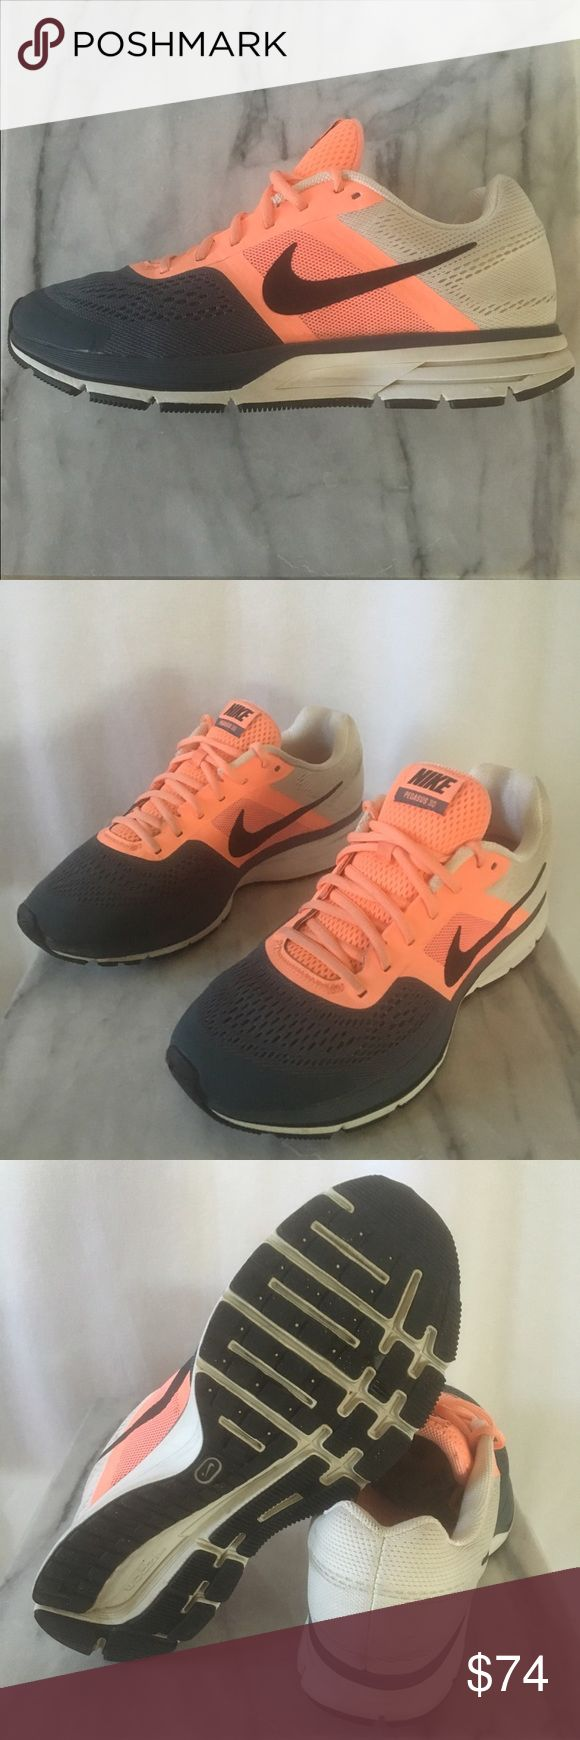 Nike Pegasus 30 Women's Sz 11. Very rare Nike Pegasus 30. Excellent condition. Cream heal, dark grey toe box and a vibrant salmon center. Thanks! Nike Shoes Athletic Shoes